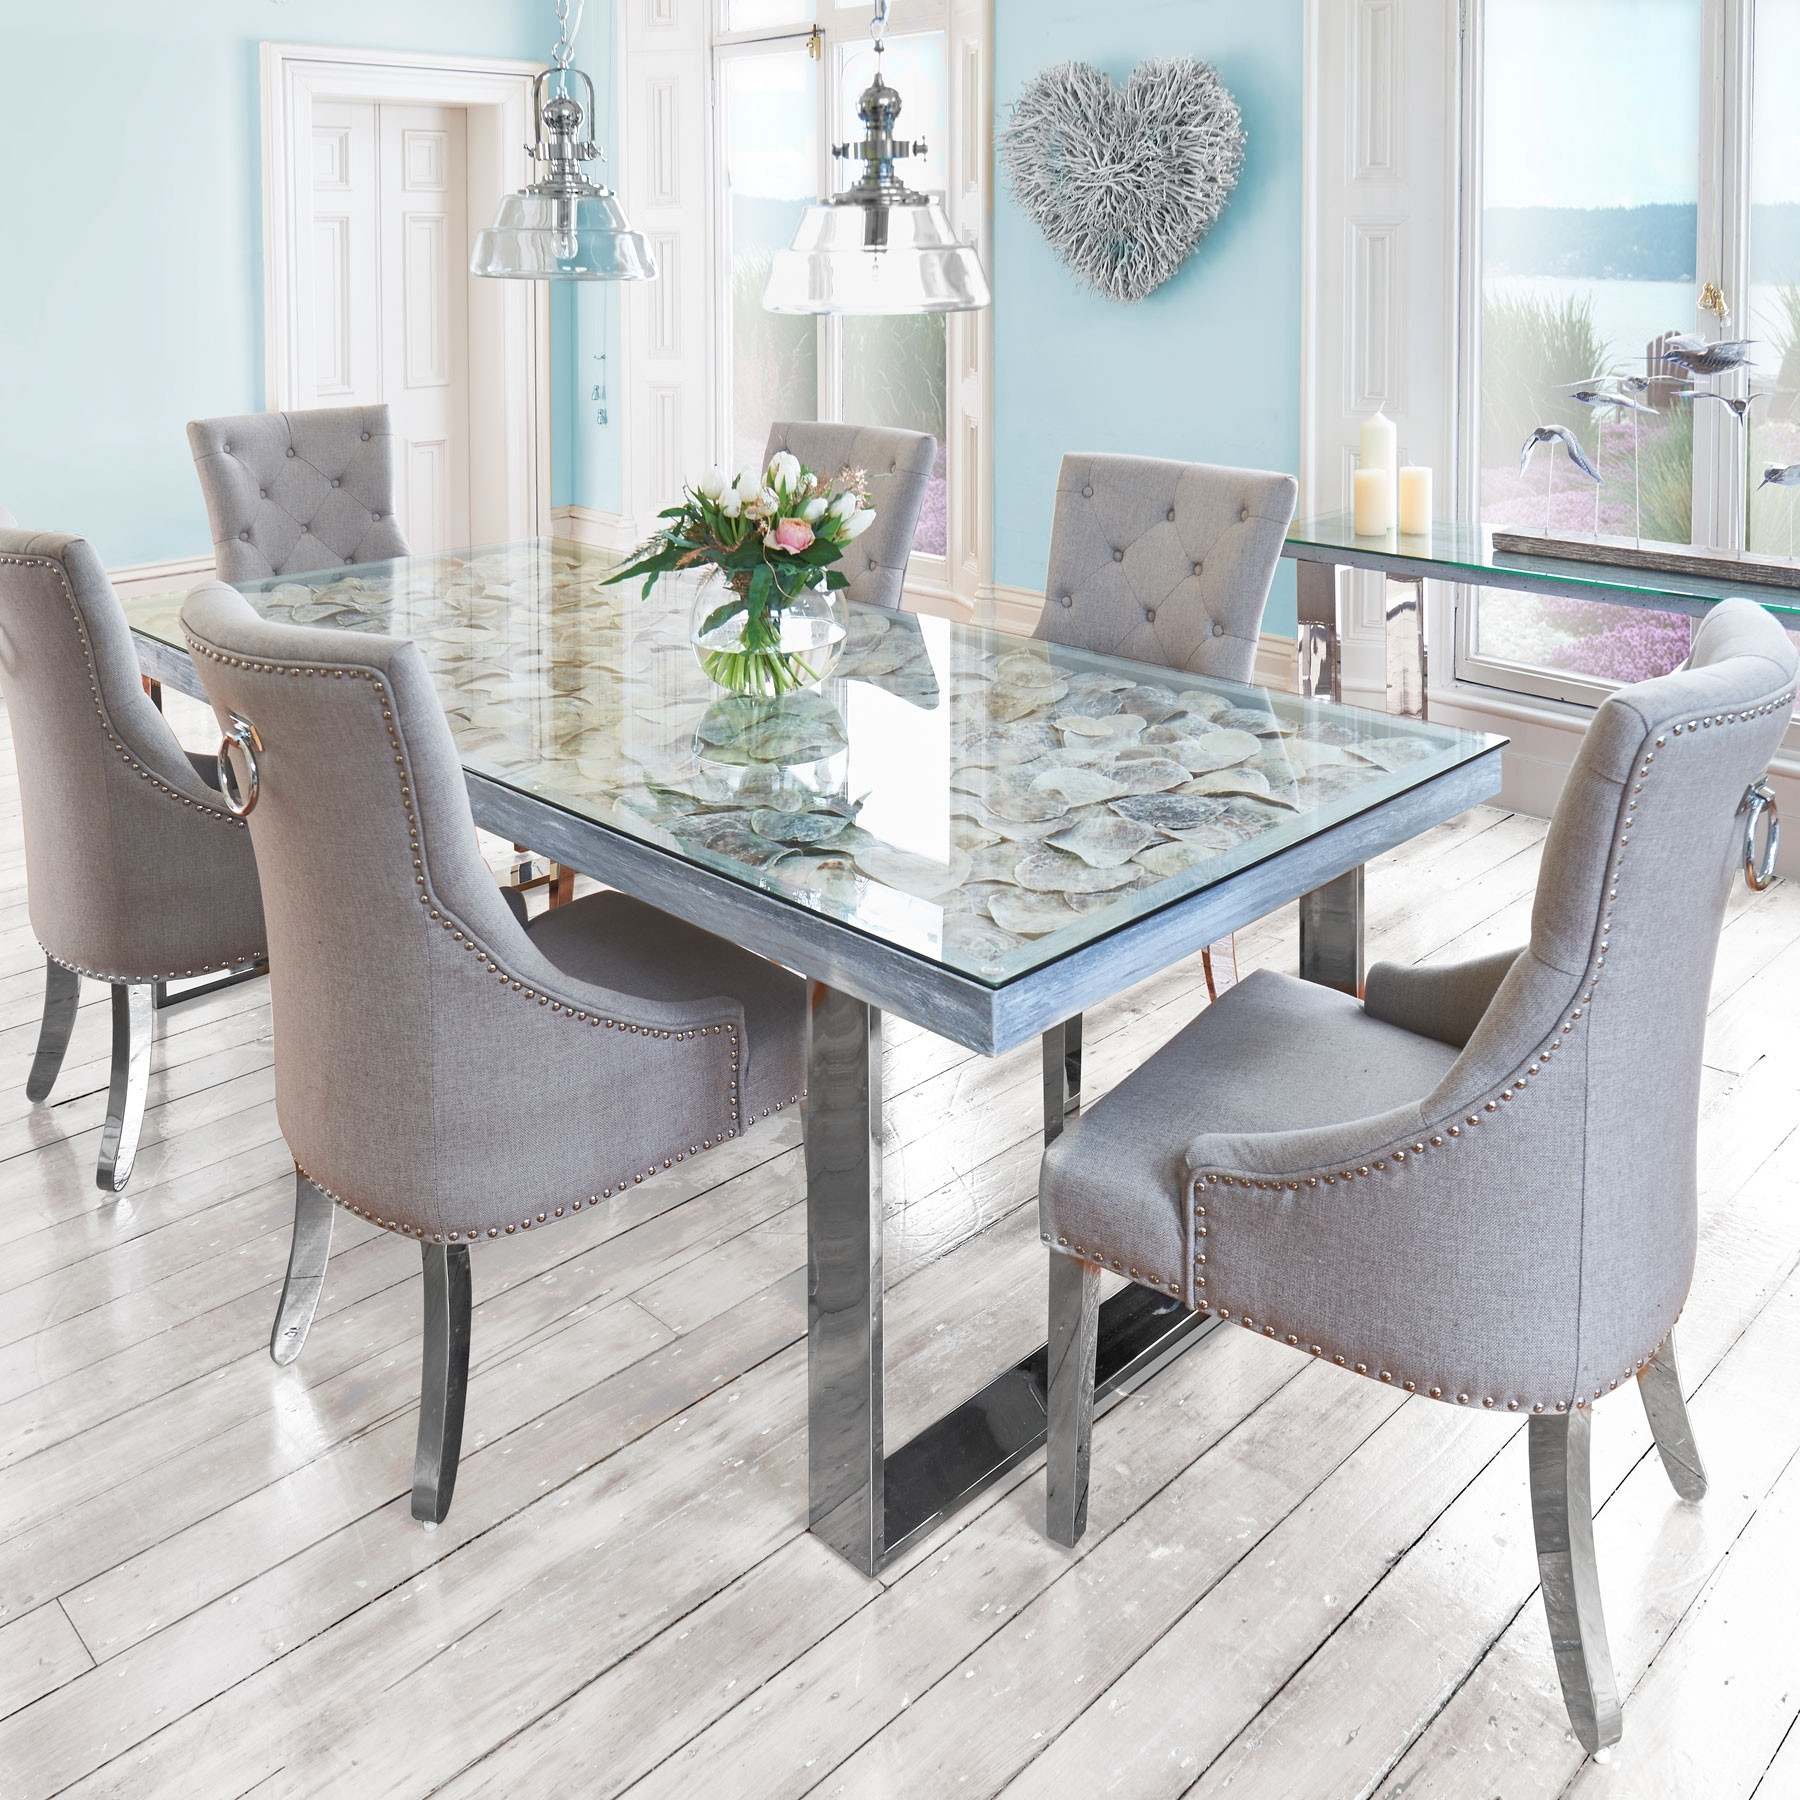 Most Recent 6 Chairs And Dining Tables for Sacramento Seashell Top Dining Table & 6 Chairs